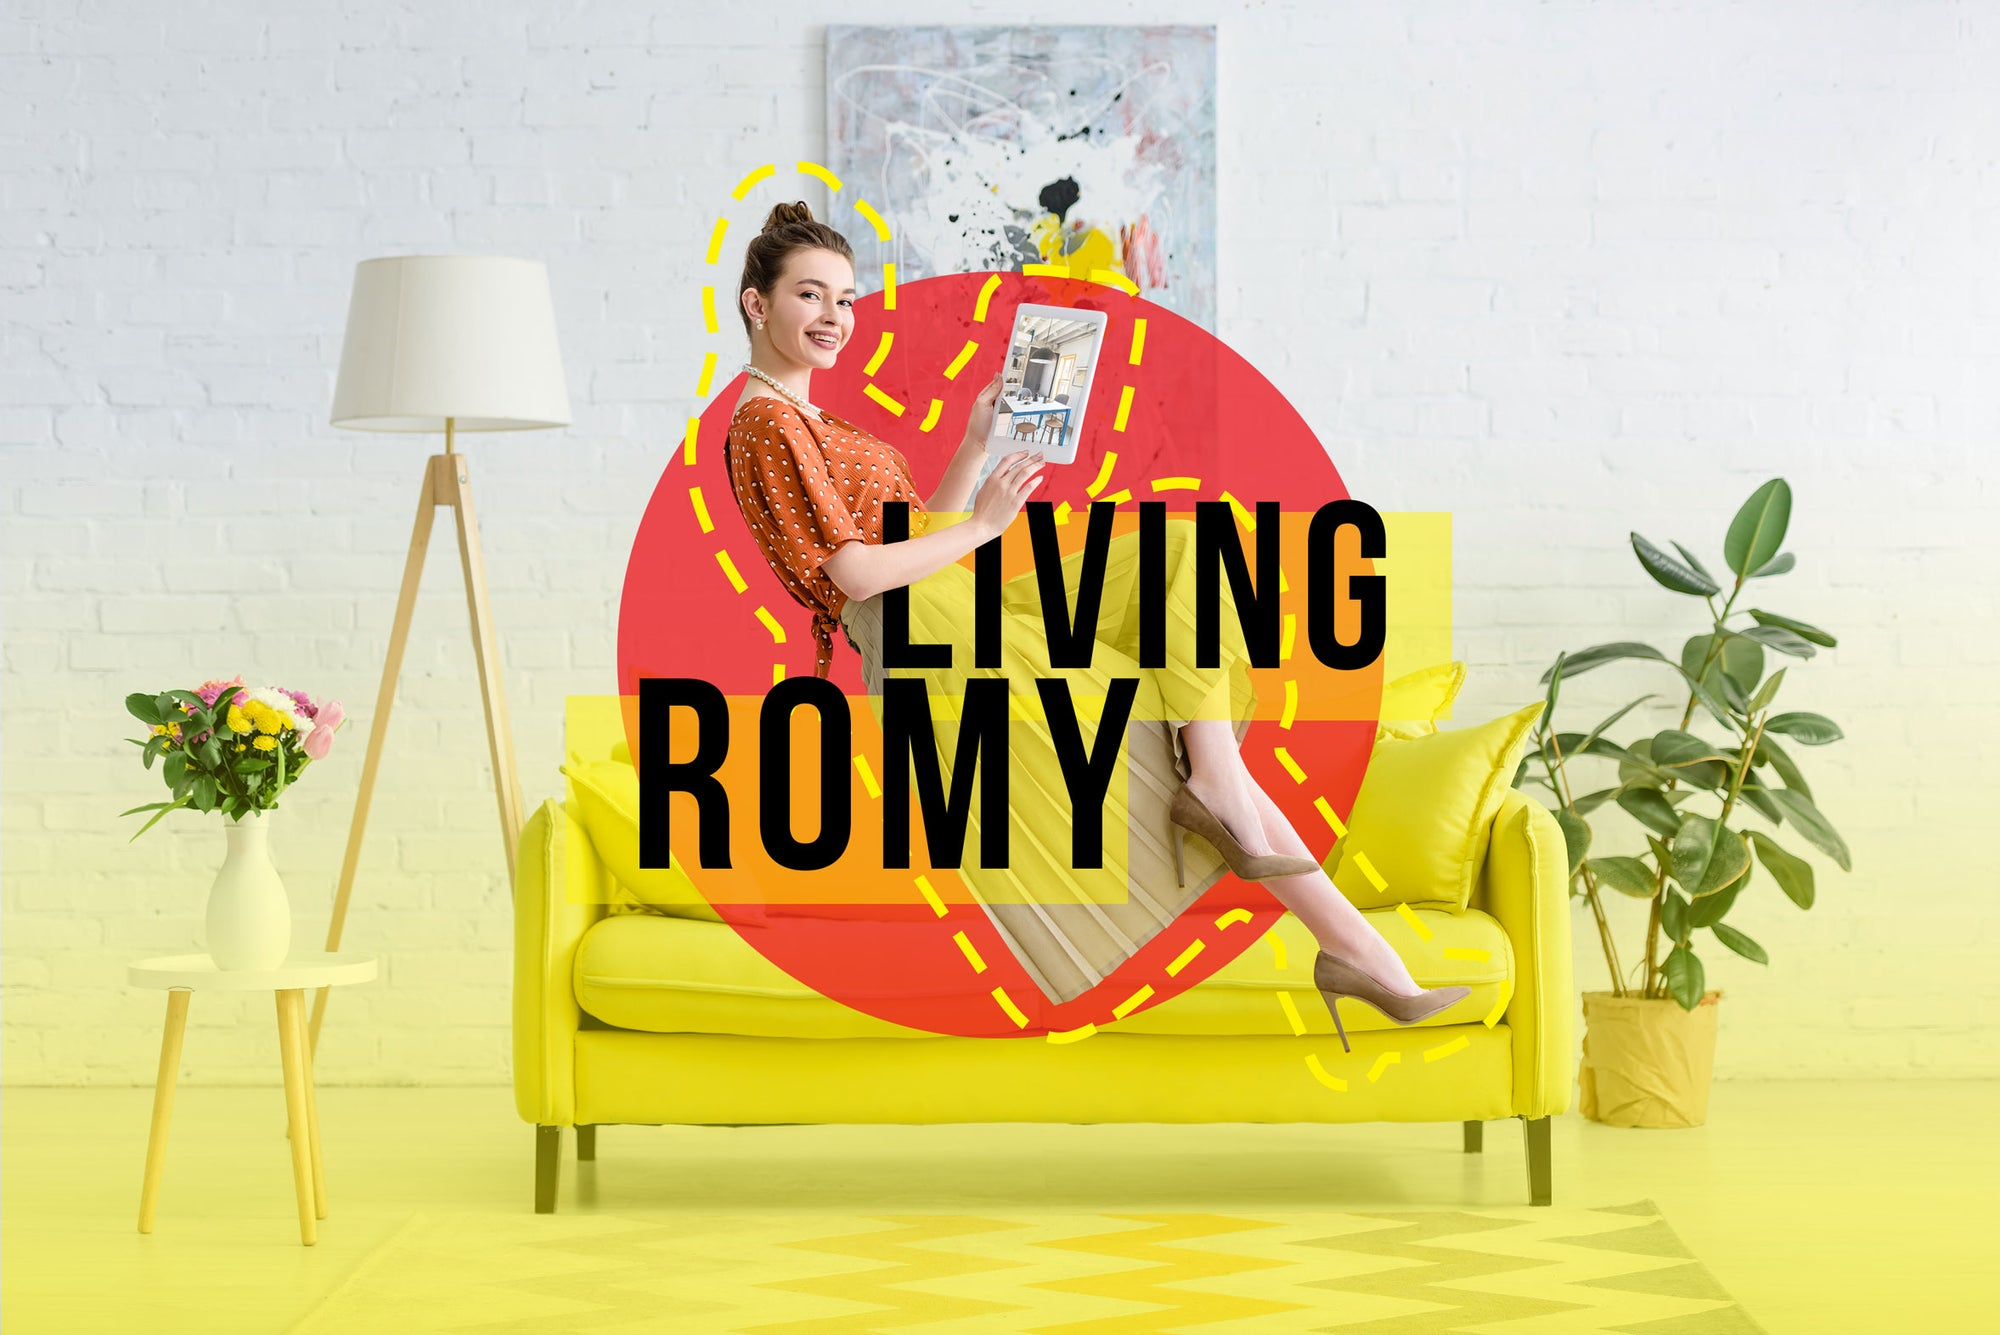 Welcome to LivingRomy.com Your place for quality homegoods